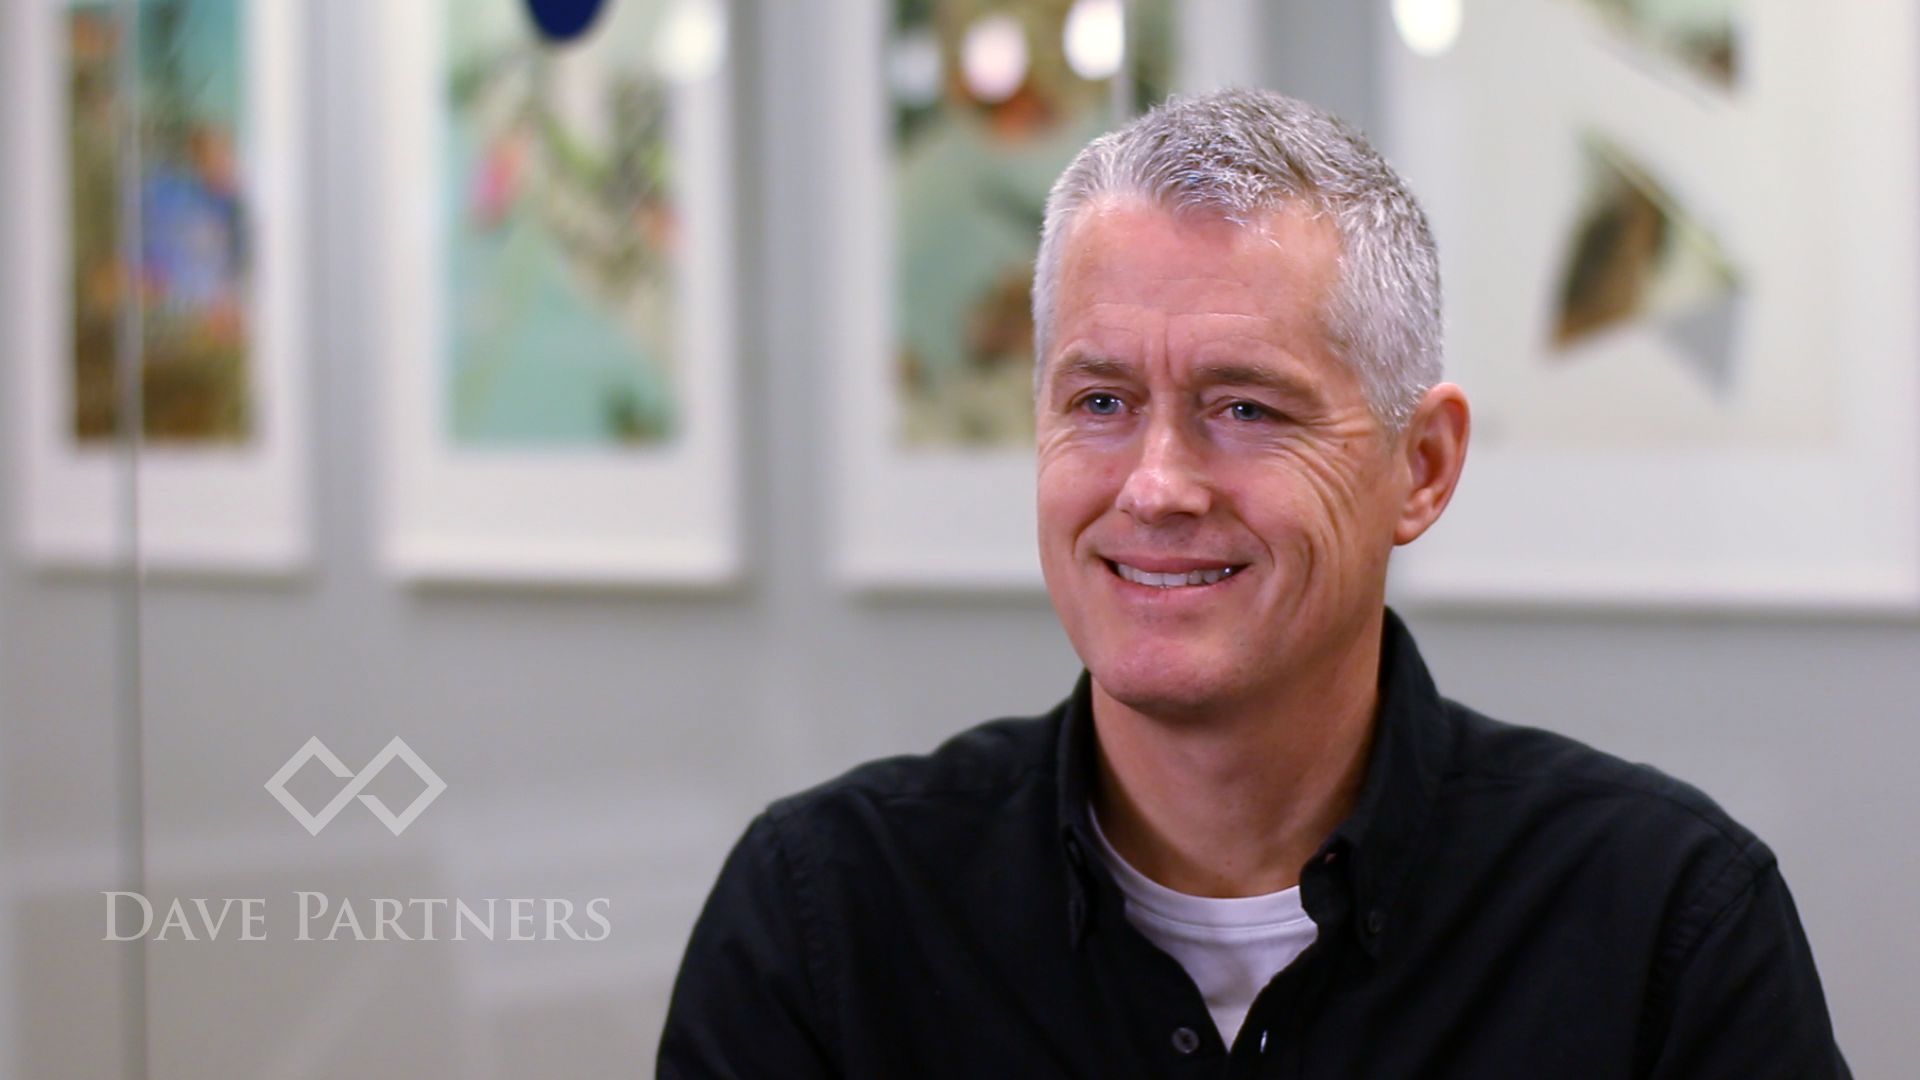 On Mentors & Mission with Steve Johnson